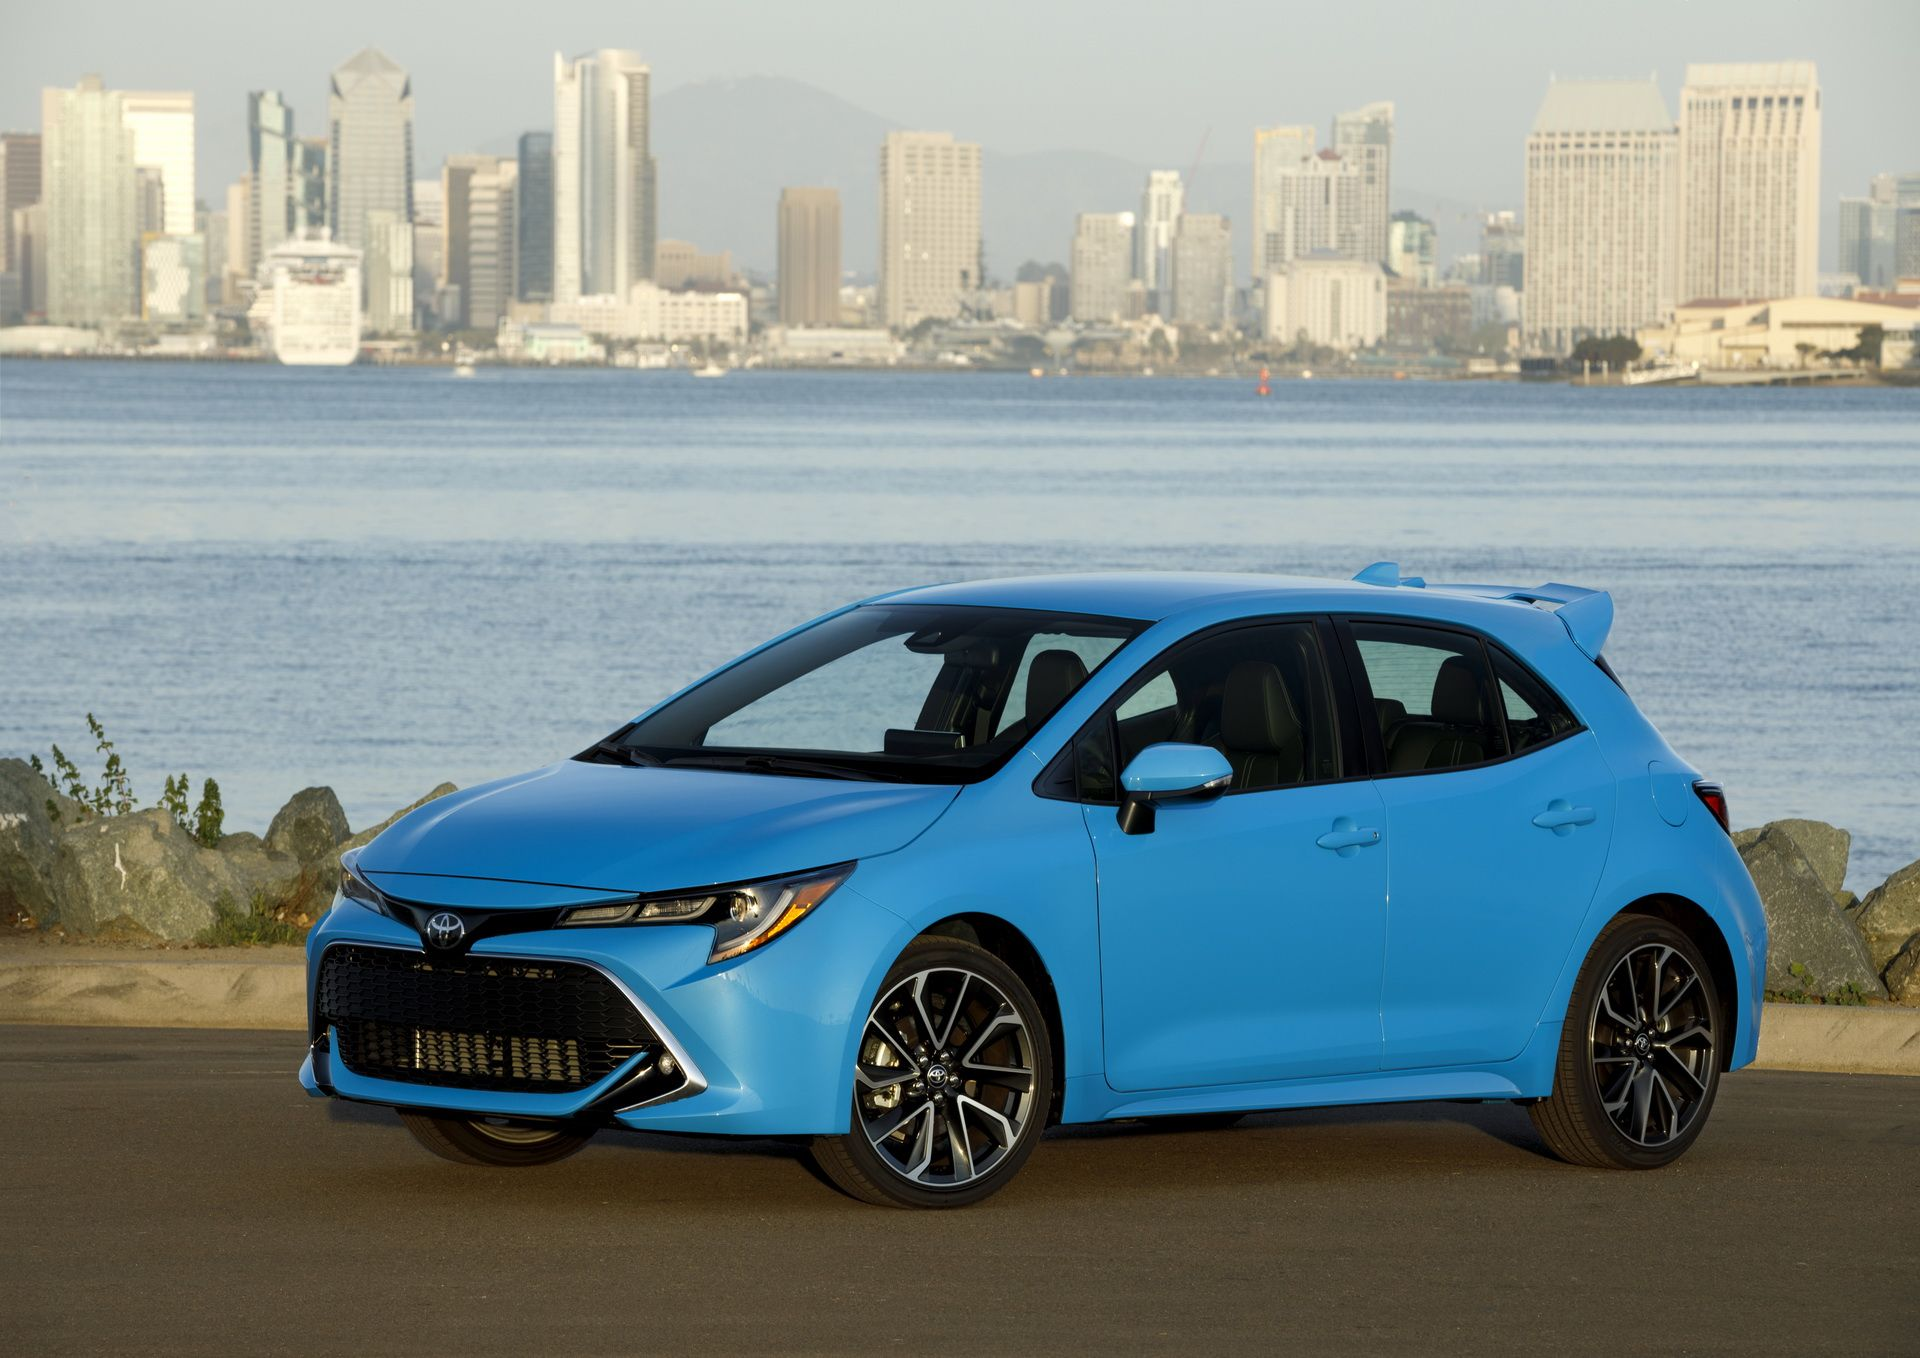 Toyota Expected To Debut New Corolla Sedan For 2020 Model